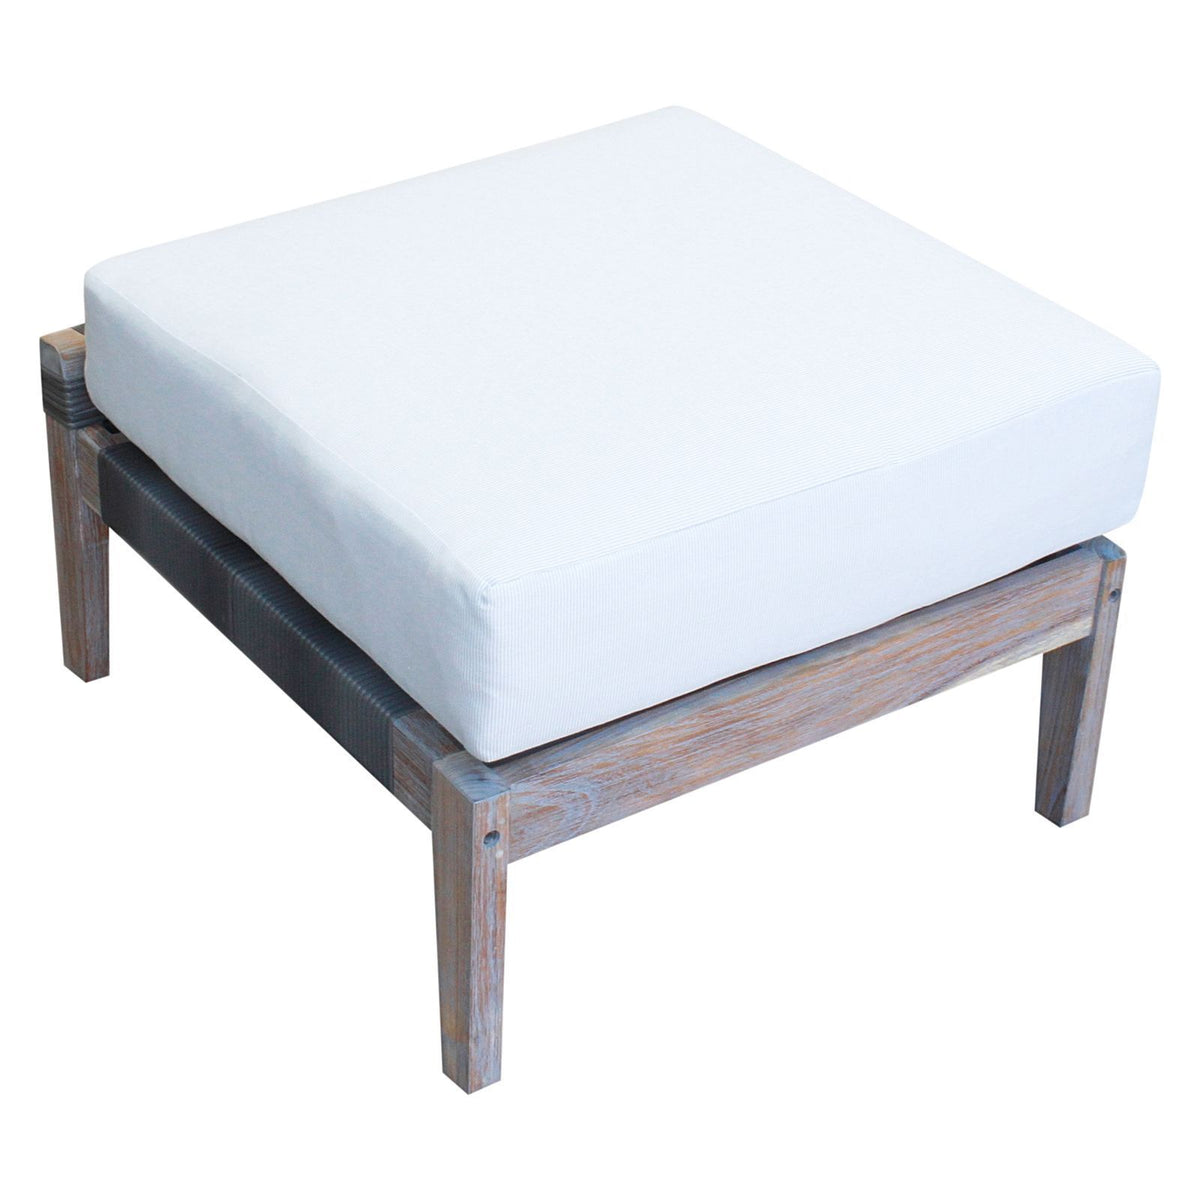 Paradise Outdoor Ottoman - Outdoor Living Essentials